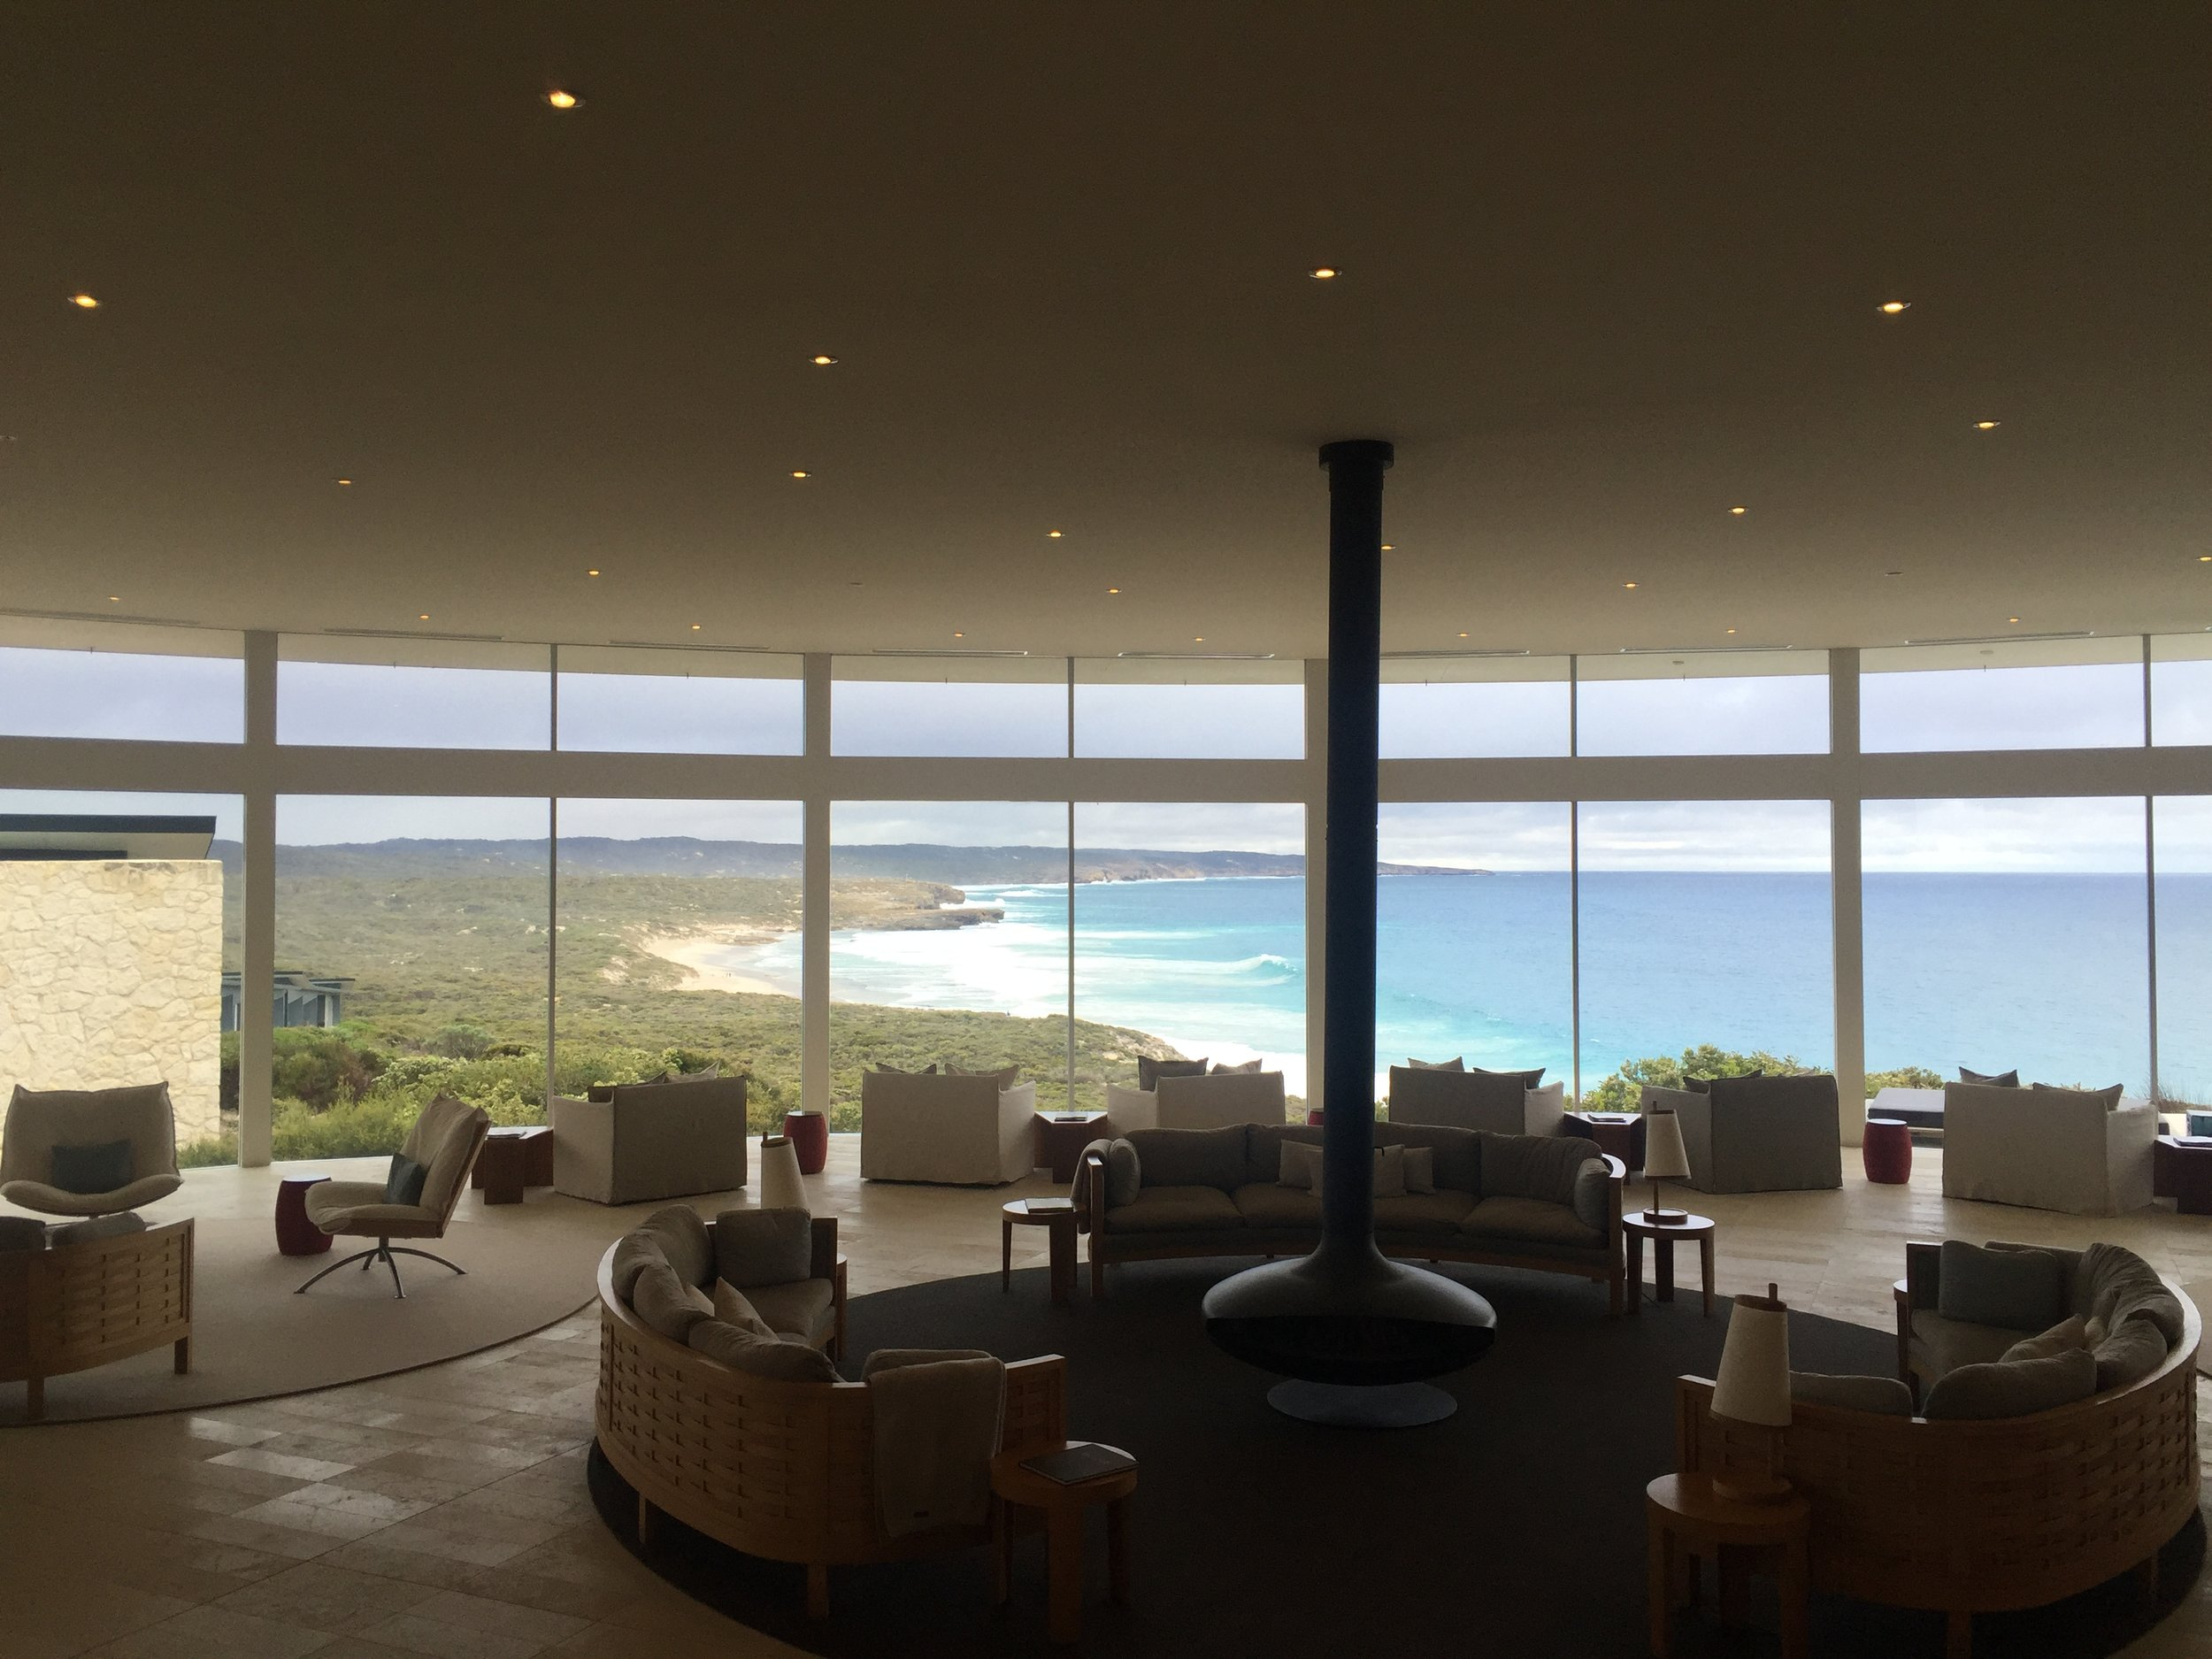 The   Southern Ocean Lodge  ; a sanctuary of sophistication and comfort, with panoramic views,  built on a cliff above the pounding surf. Iconic. And sprinkled with the art of the über talented   Janine Mackintosh  .